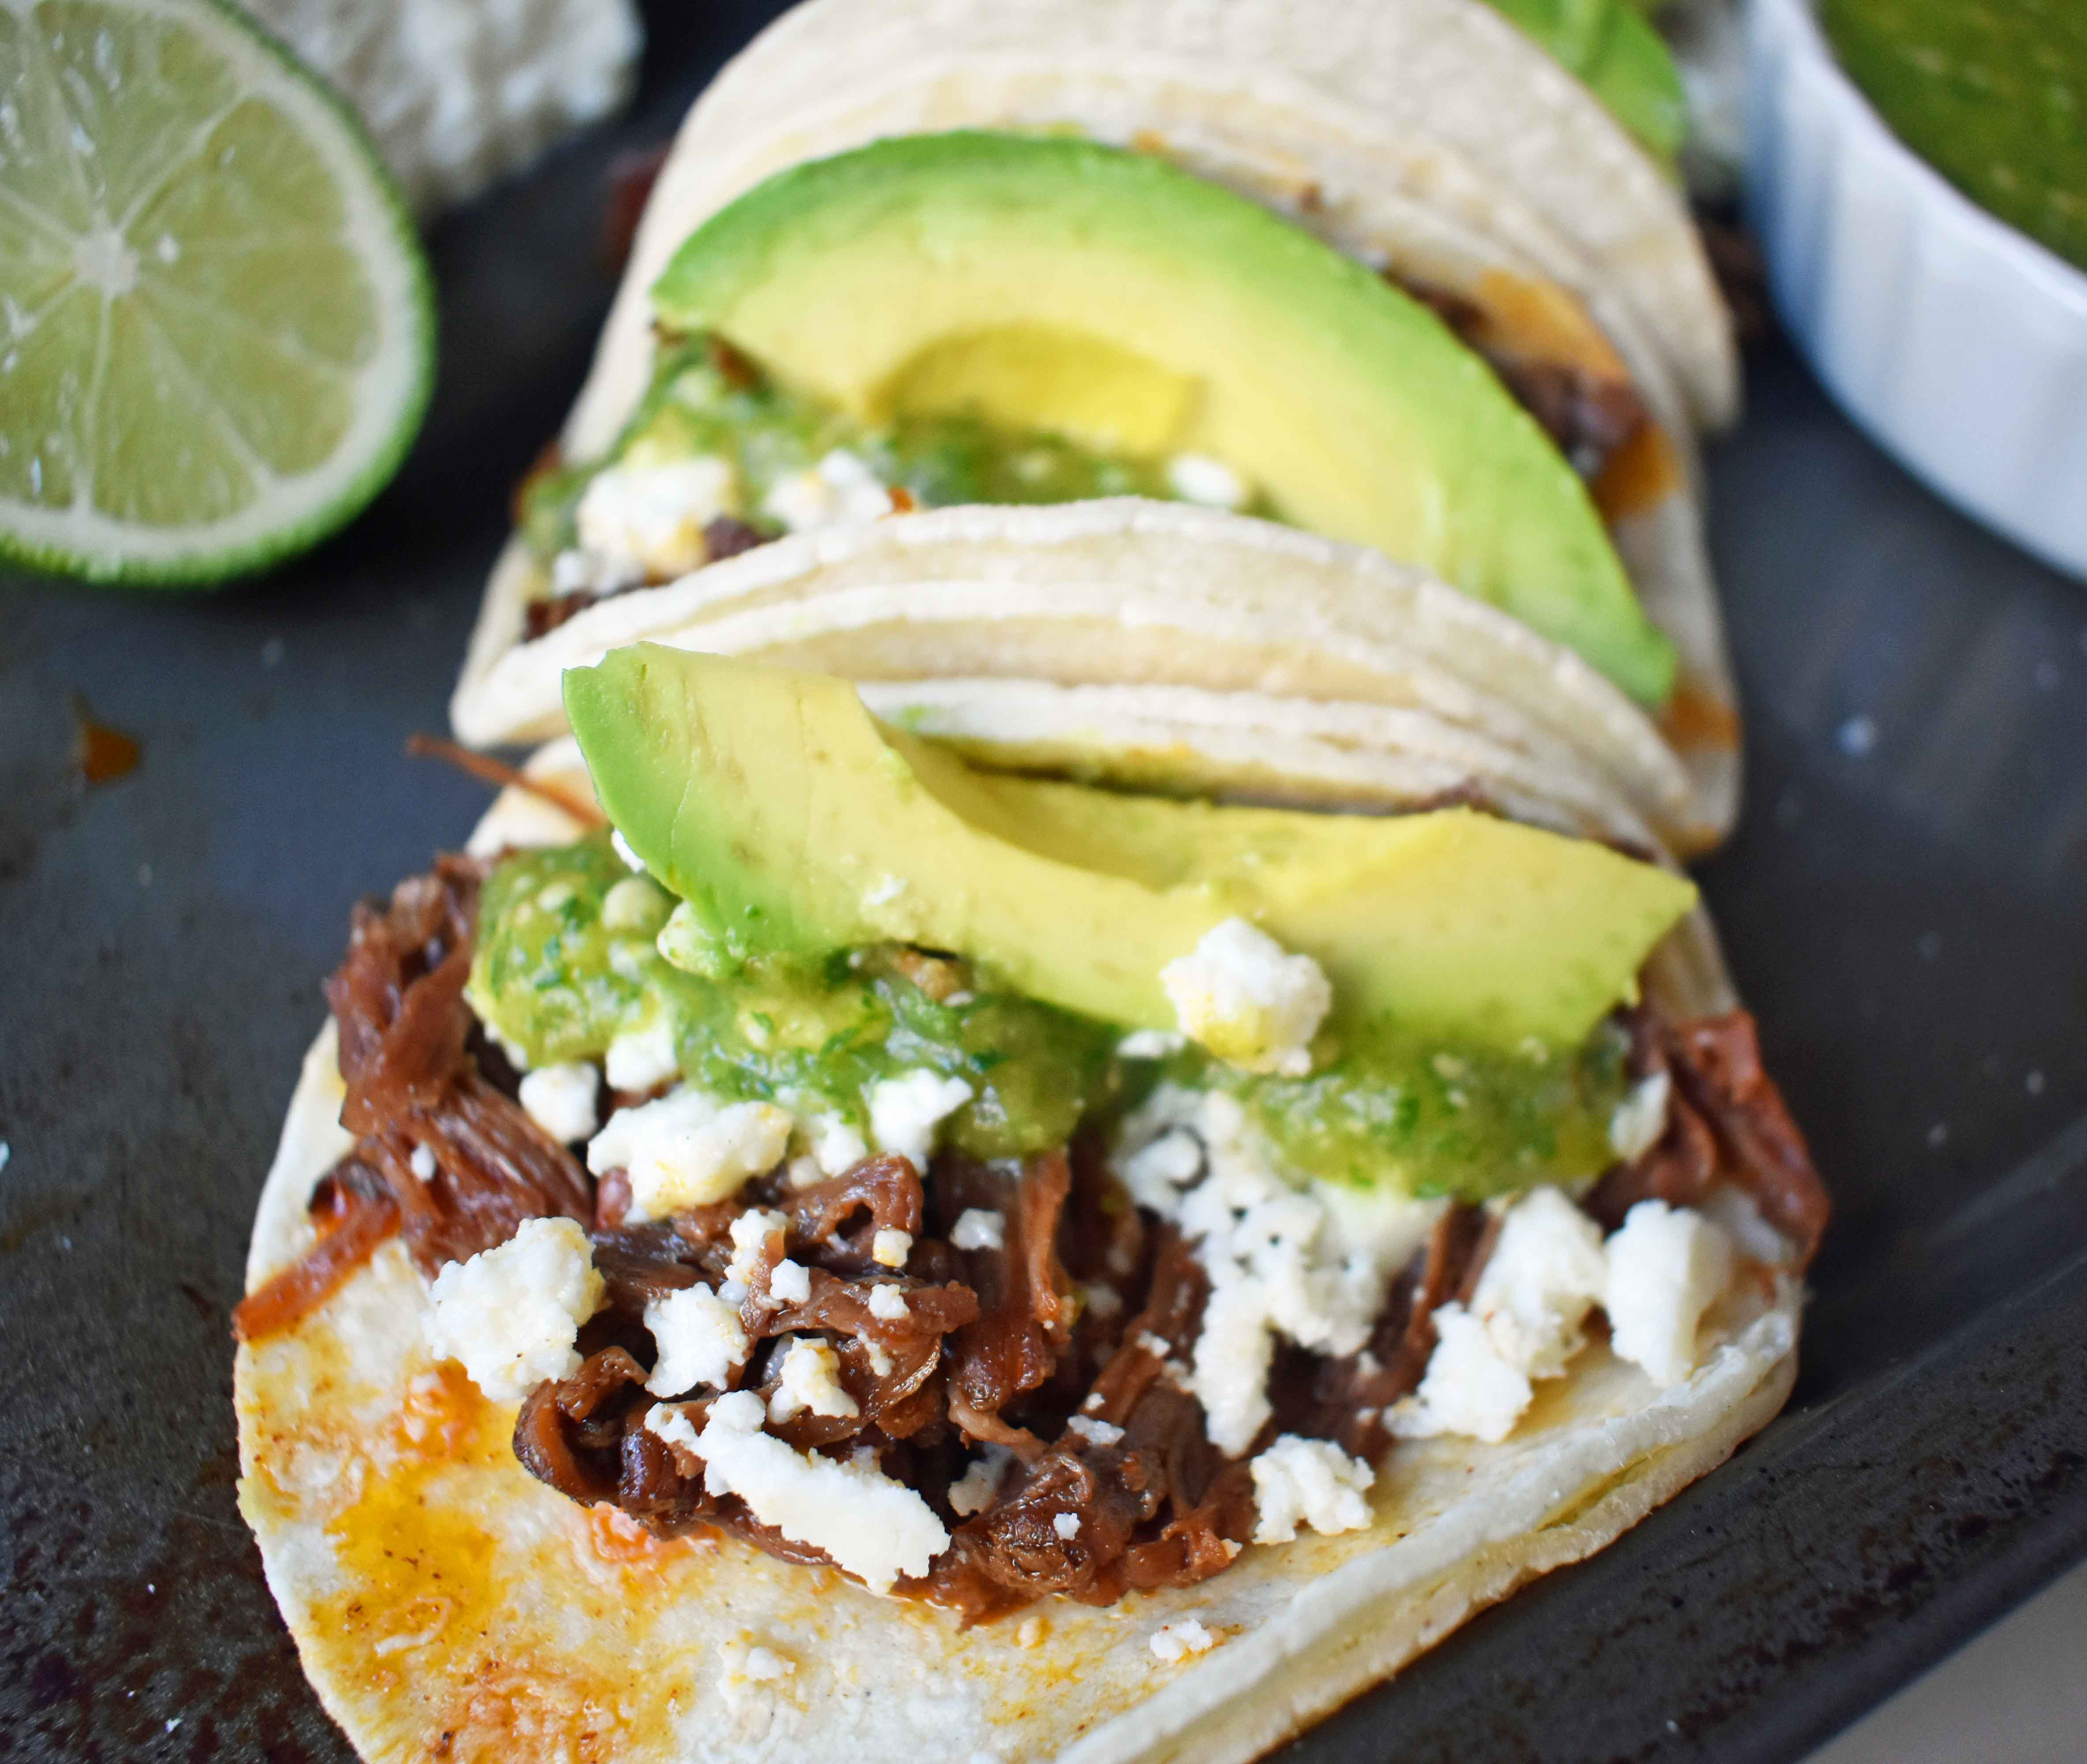 Queso Fresco On Tacos